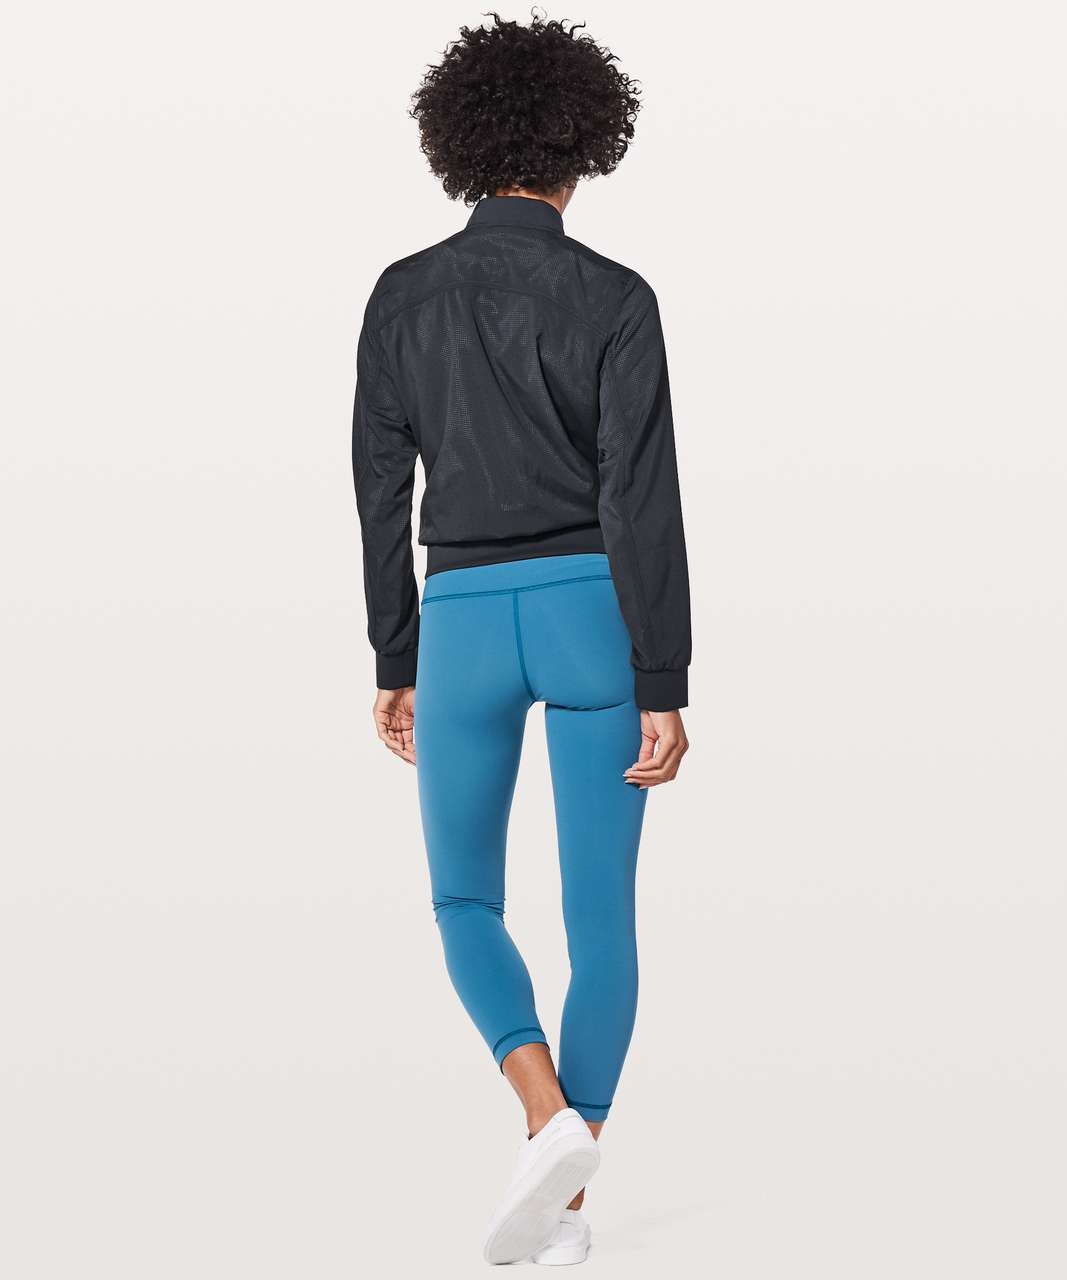 Lululemon Bomb Around Jacket *Reversible - Black Night / Sun Dazed Multi Blue